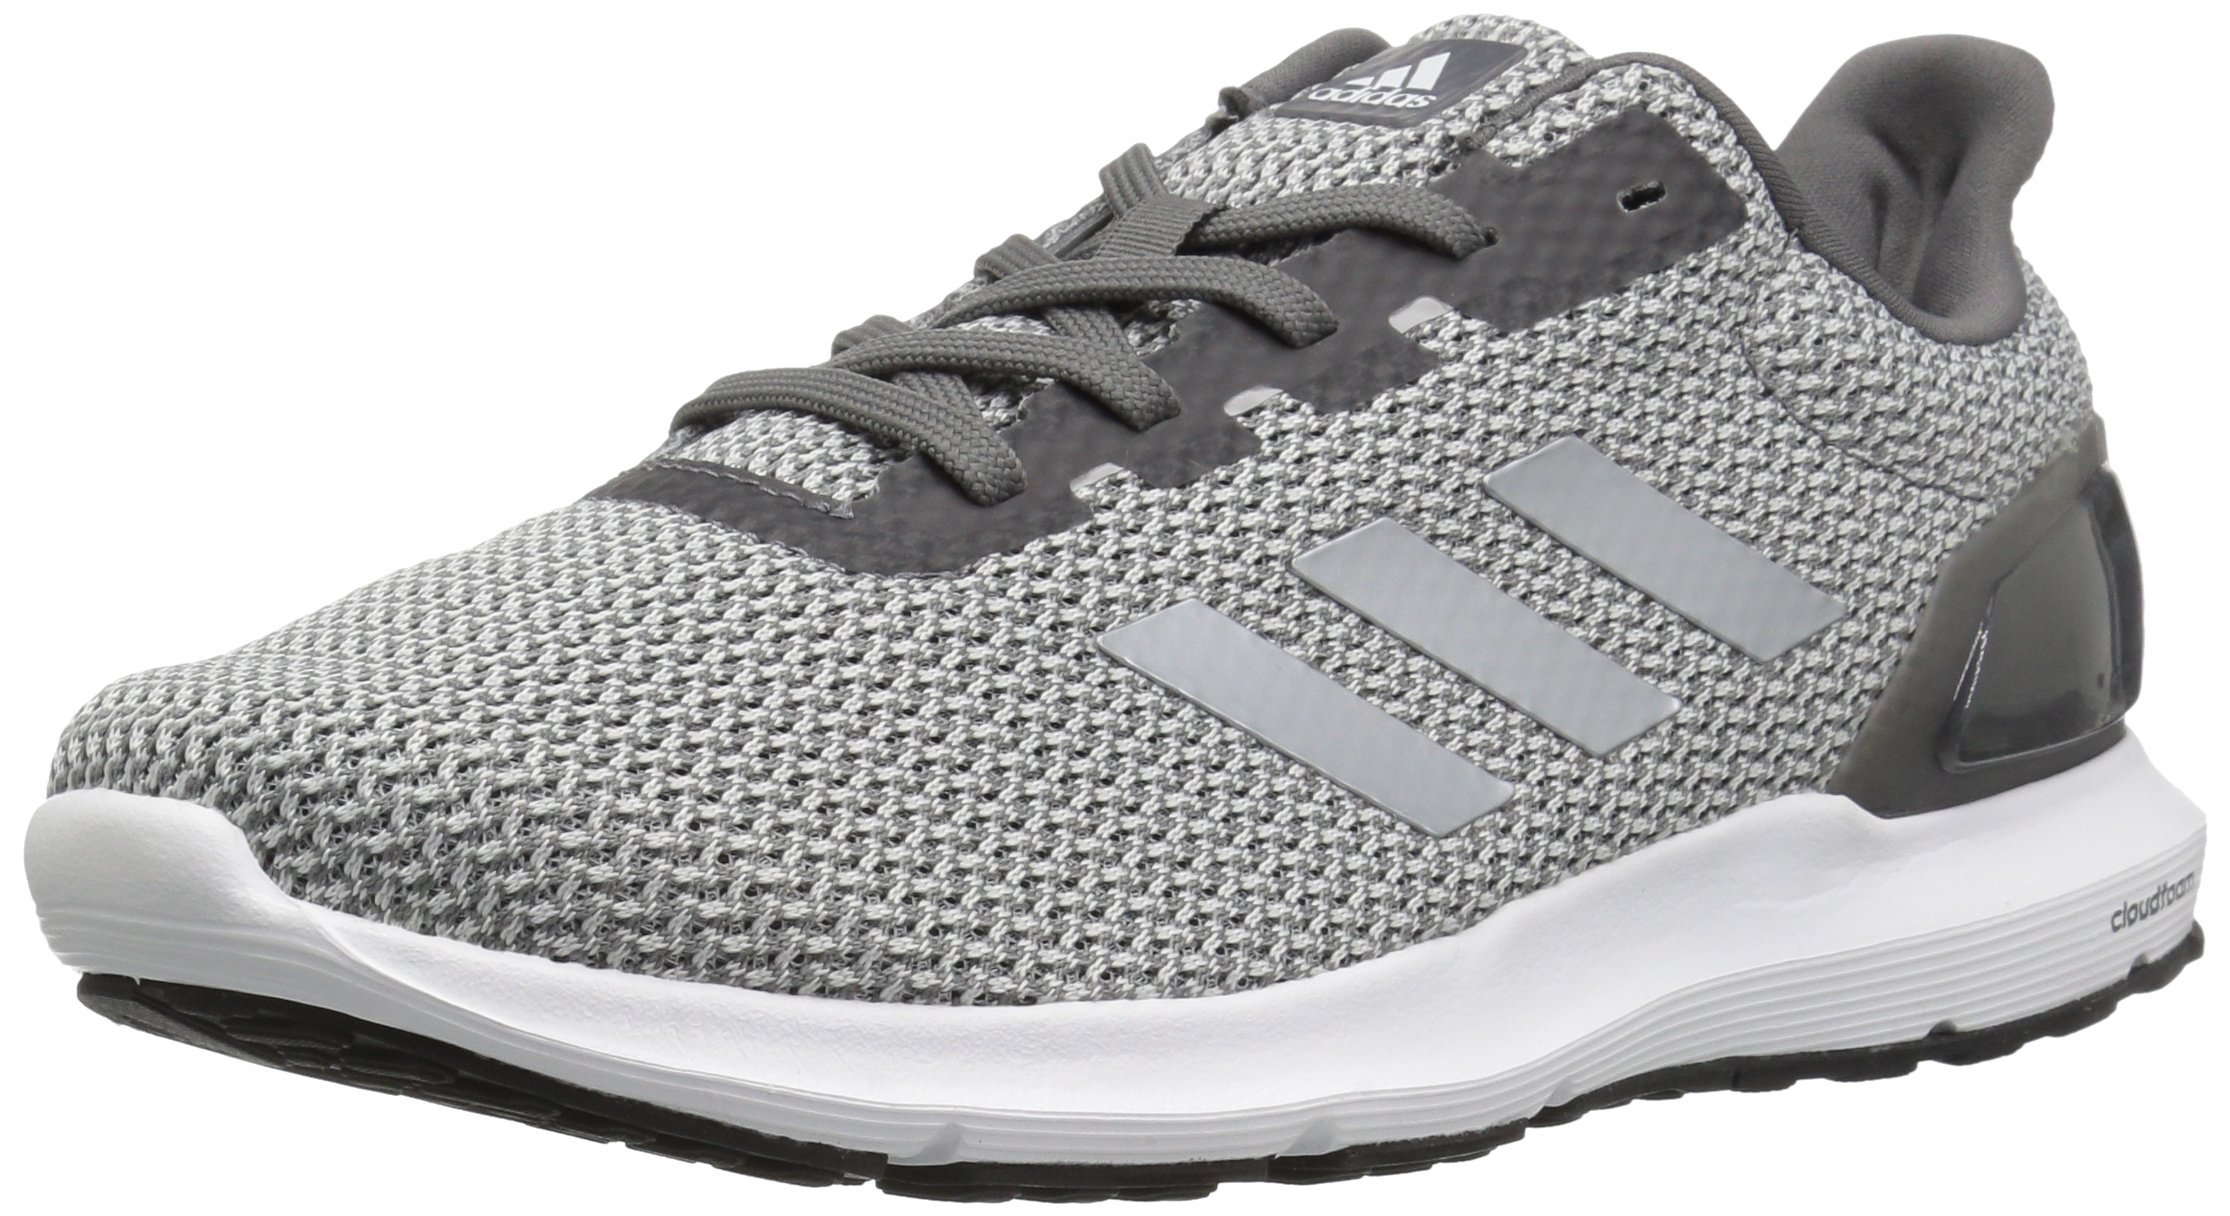 adidas Women's Cosmic 2 Sl w Running Shoe, Metallic Silver/Grey Four/White, 8 Medium US